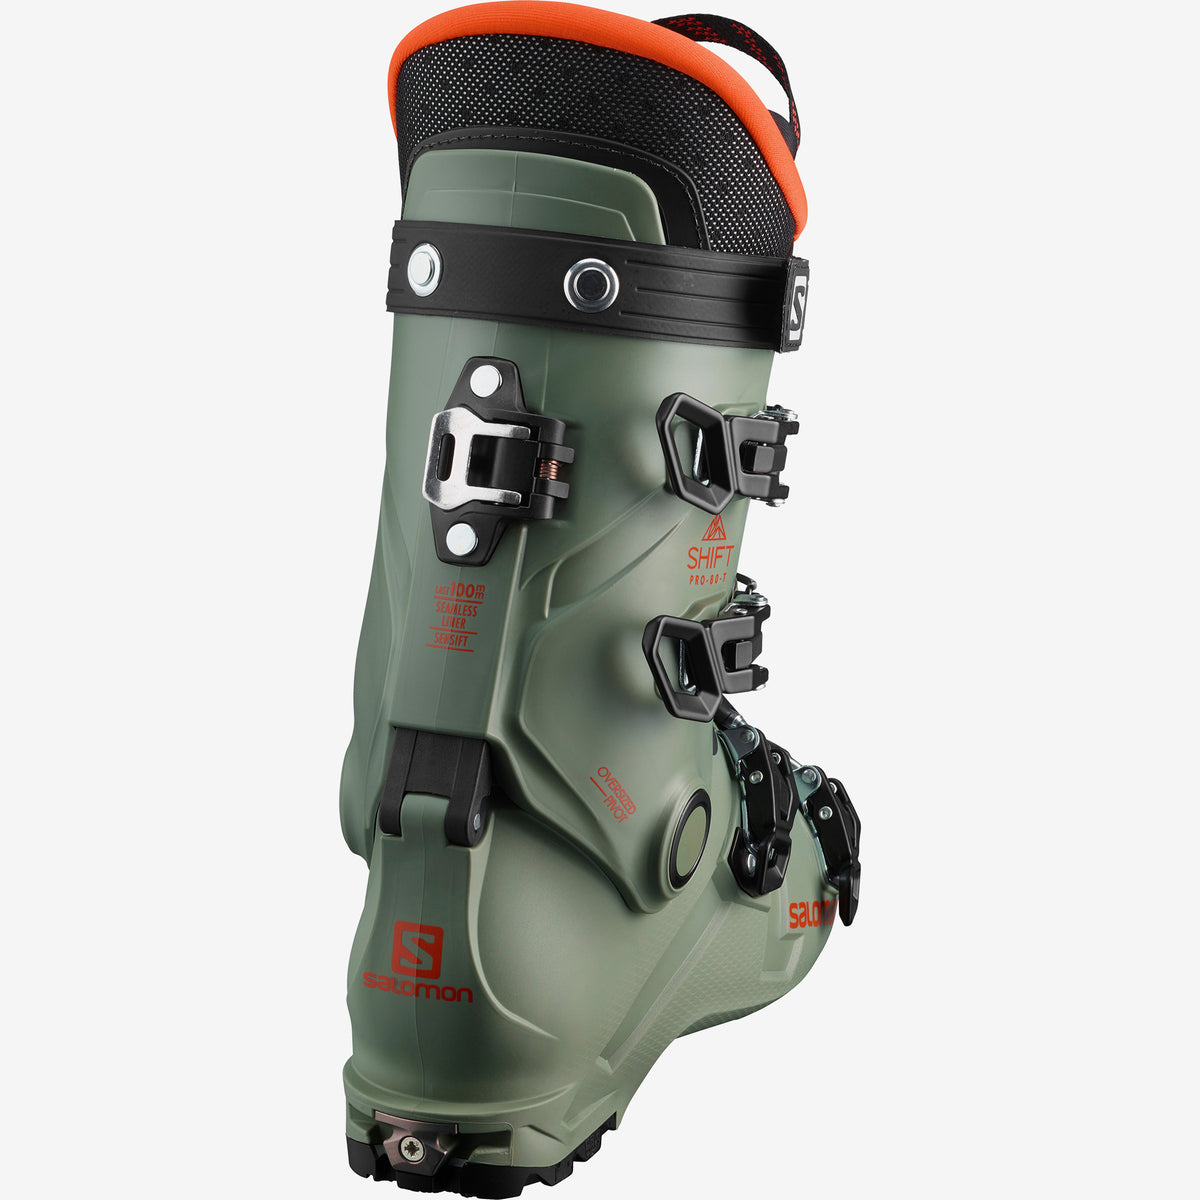 Salomon SHIFT PRO 80T AT Ski Boots 2021